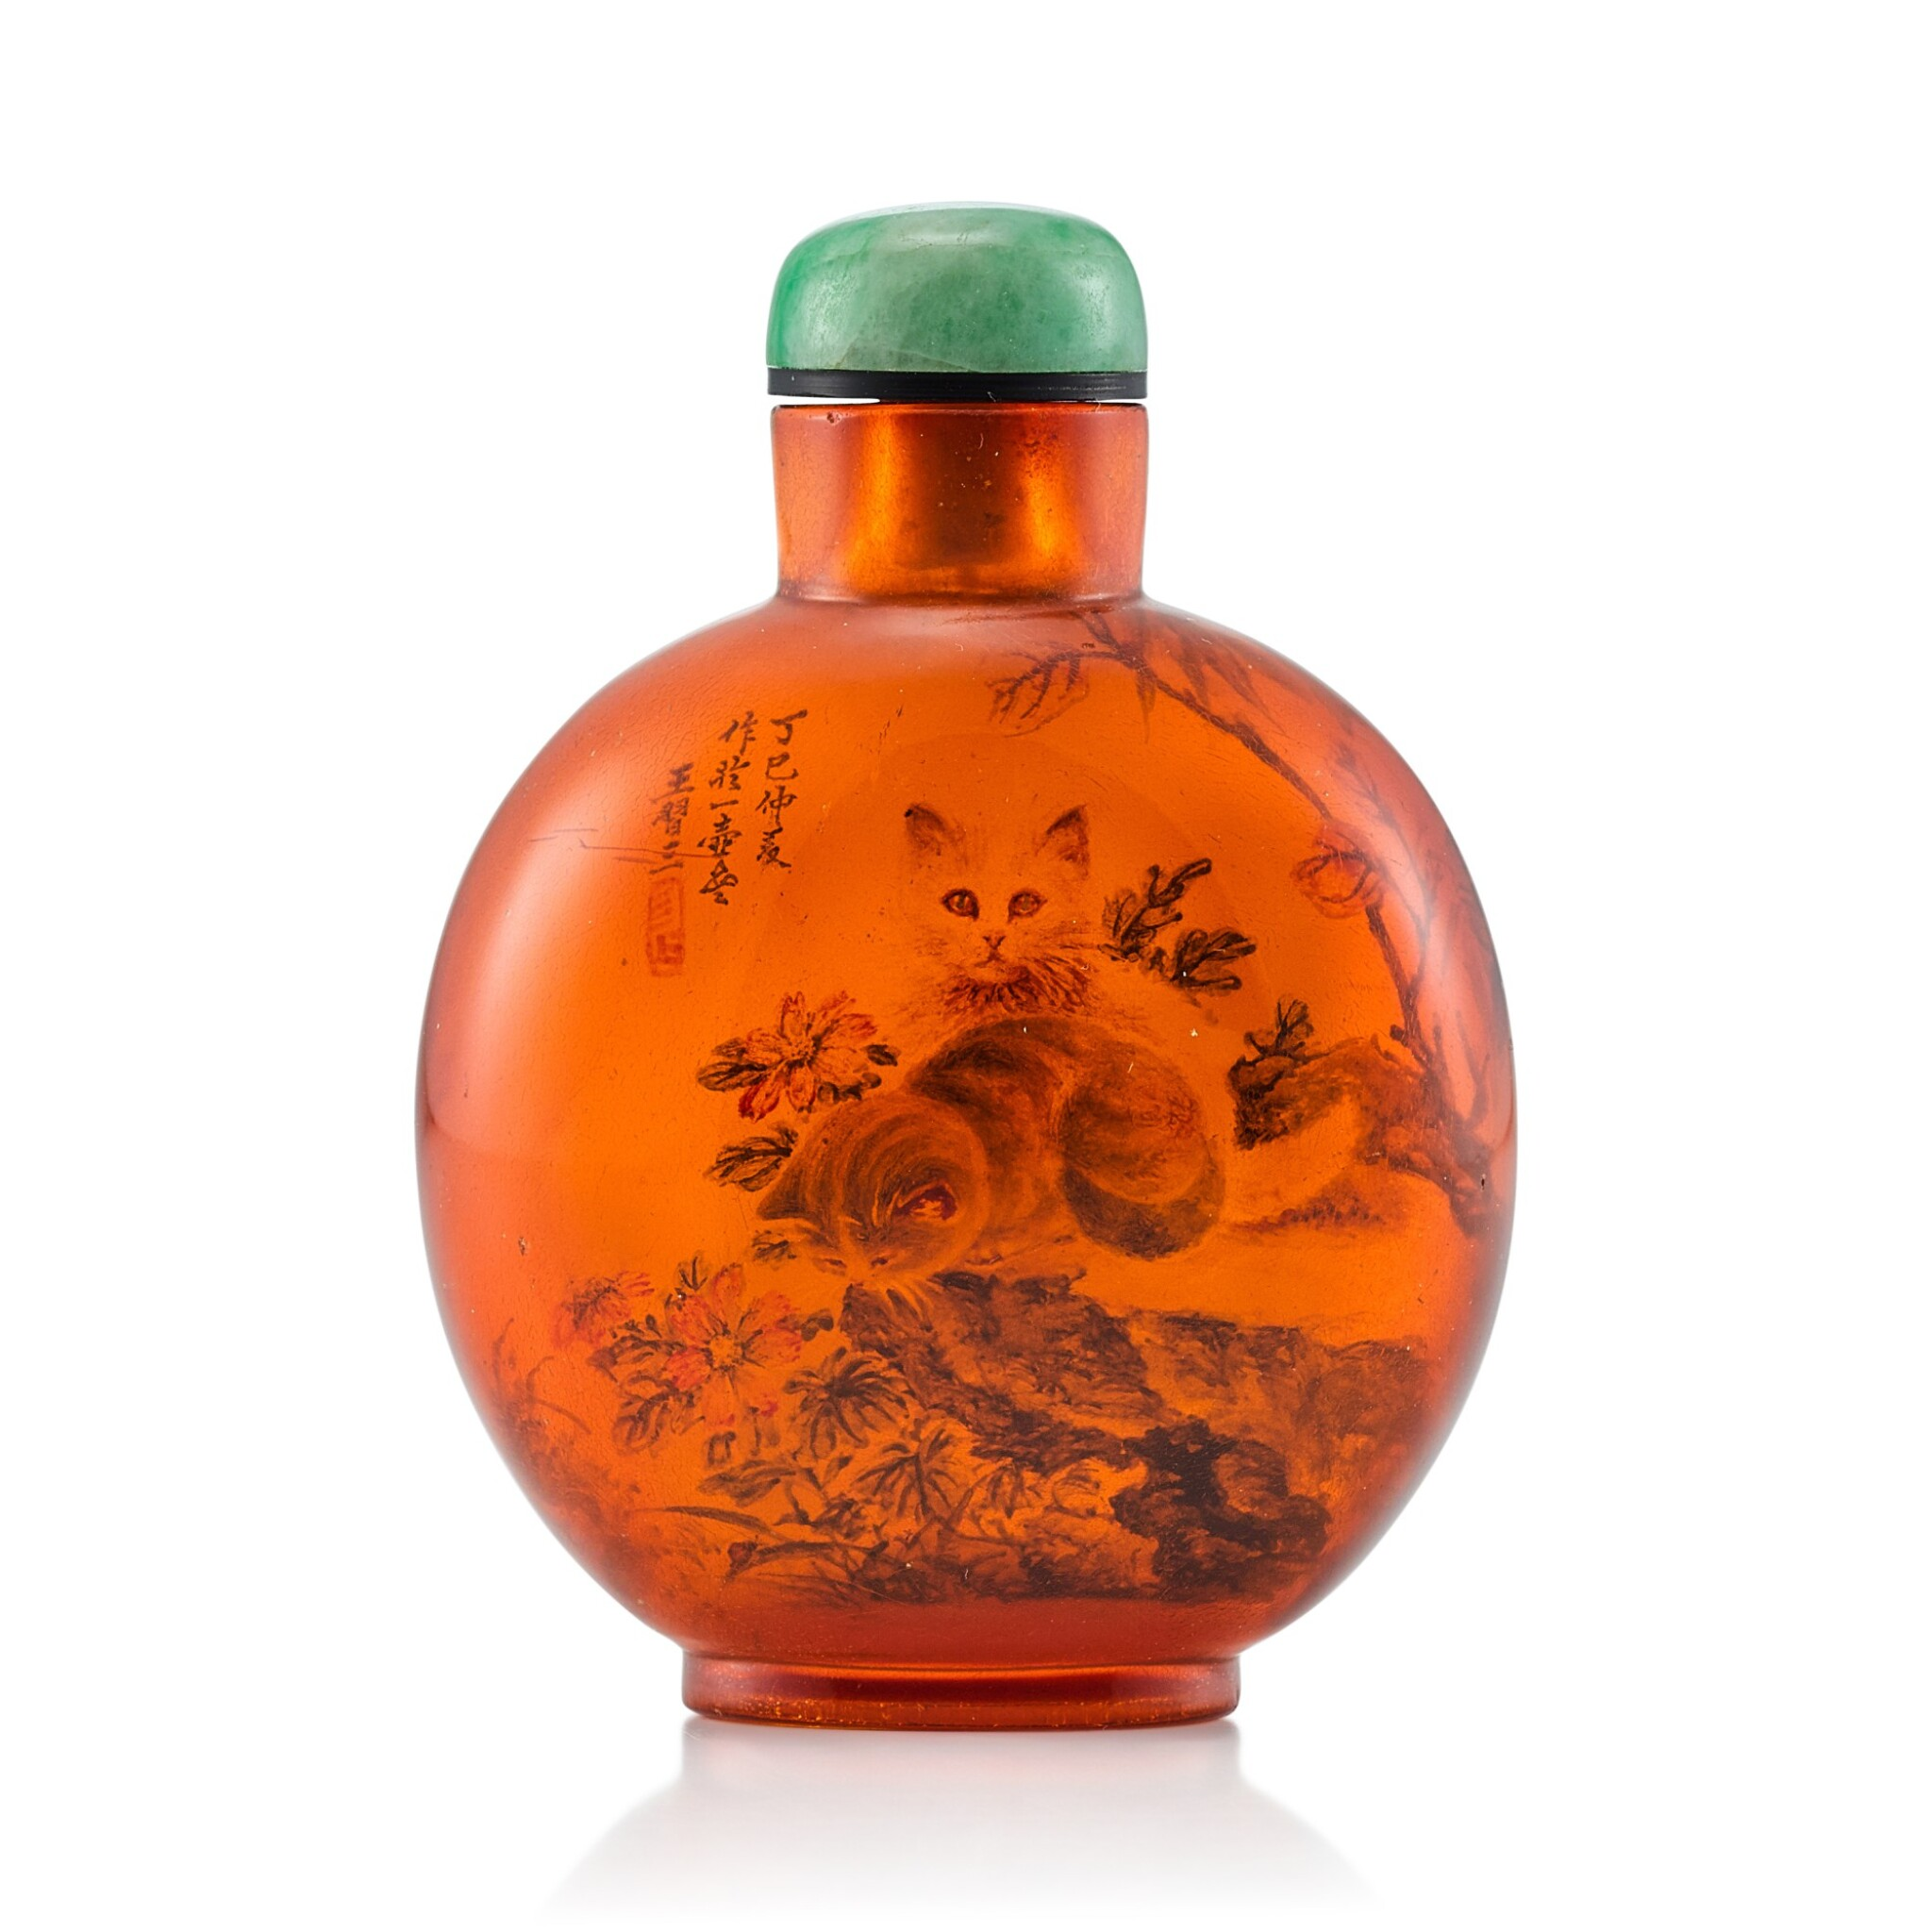 View full screen - View 1 of Lot 3029. An Inside-Painted Amber 'Cats' Snuff Bottle By Wang Xisan, Dated Dingsi Year, Corresponding to 1977 | 丁巳(1977年) 王習三作琥珀內畫耄耋圖鼻煙壺 《丁巳仲夏作於一壺齋王習三》款.